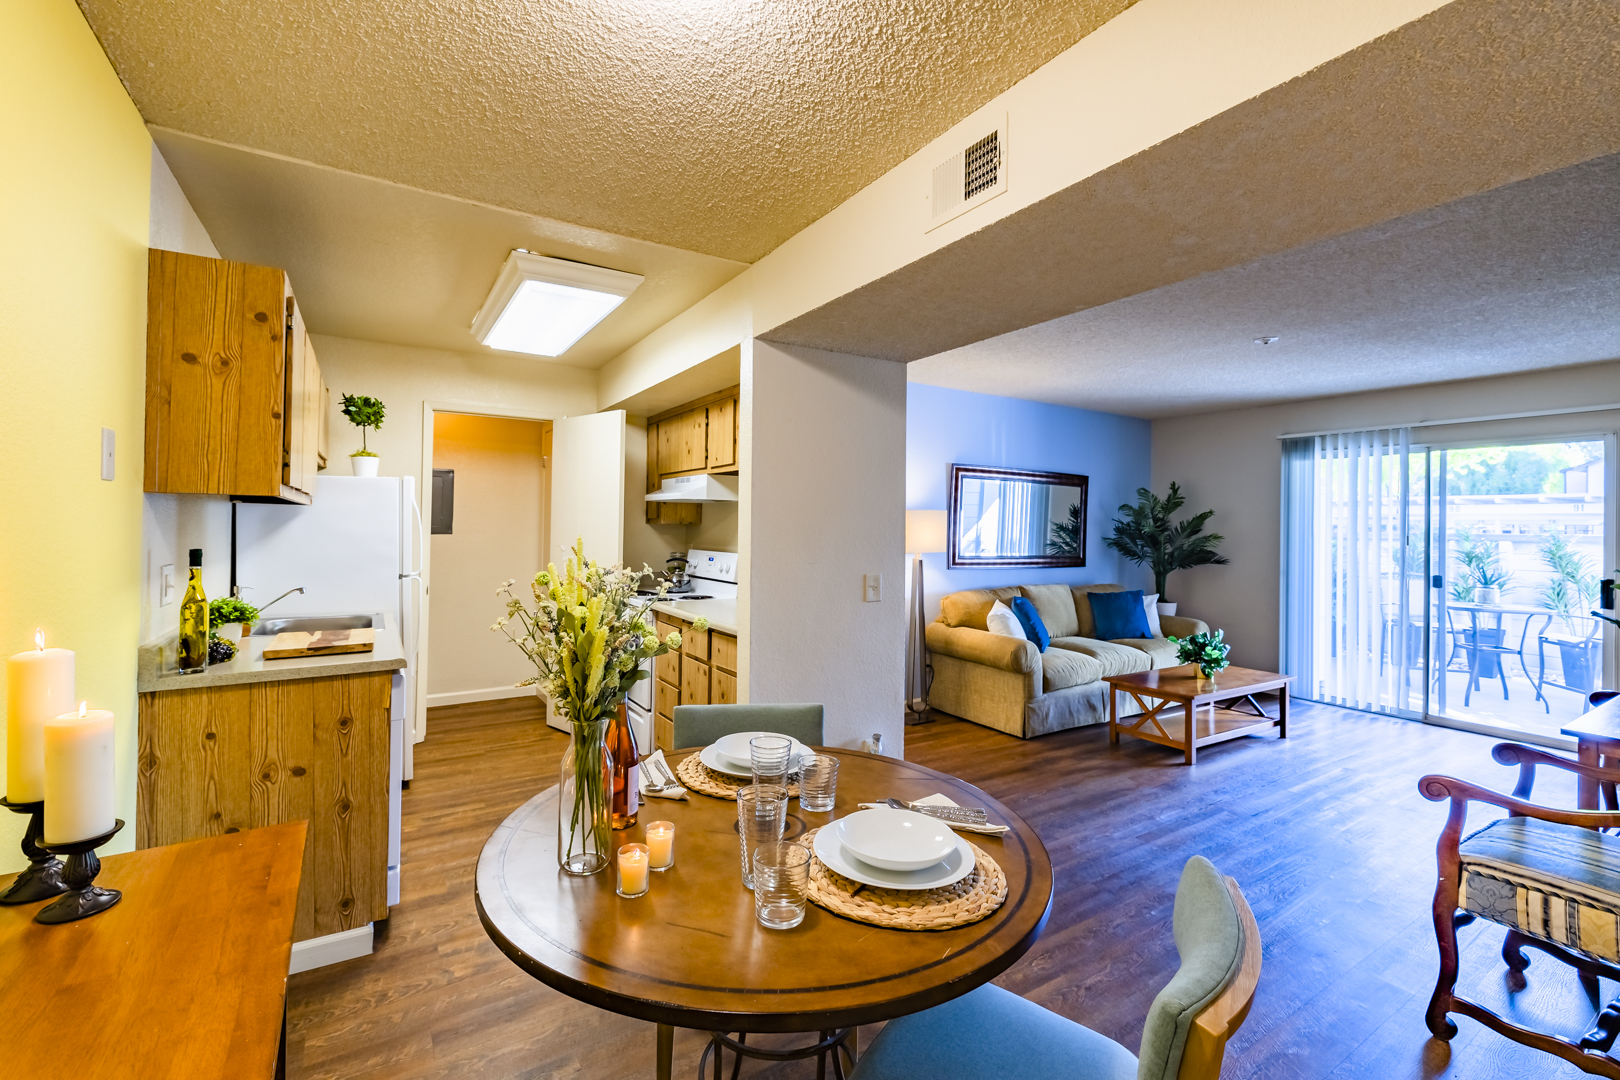 Country Brook Rental Condos for rent